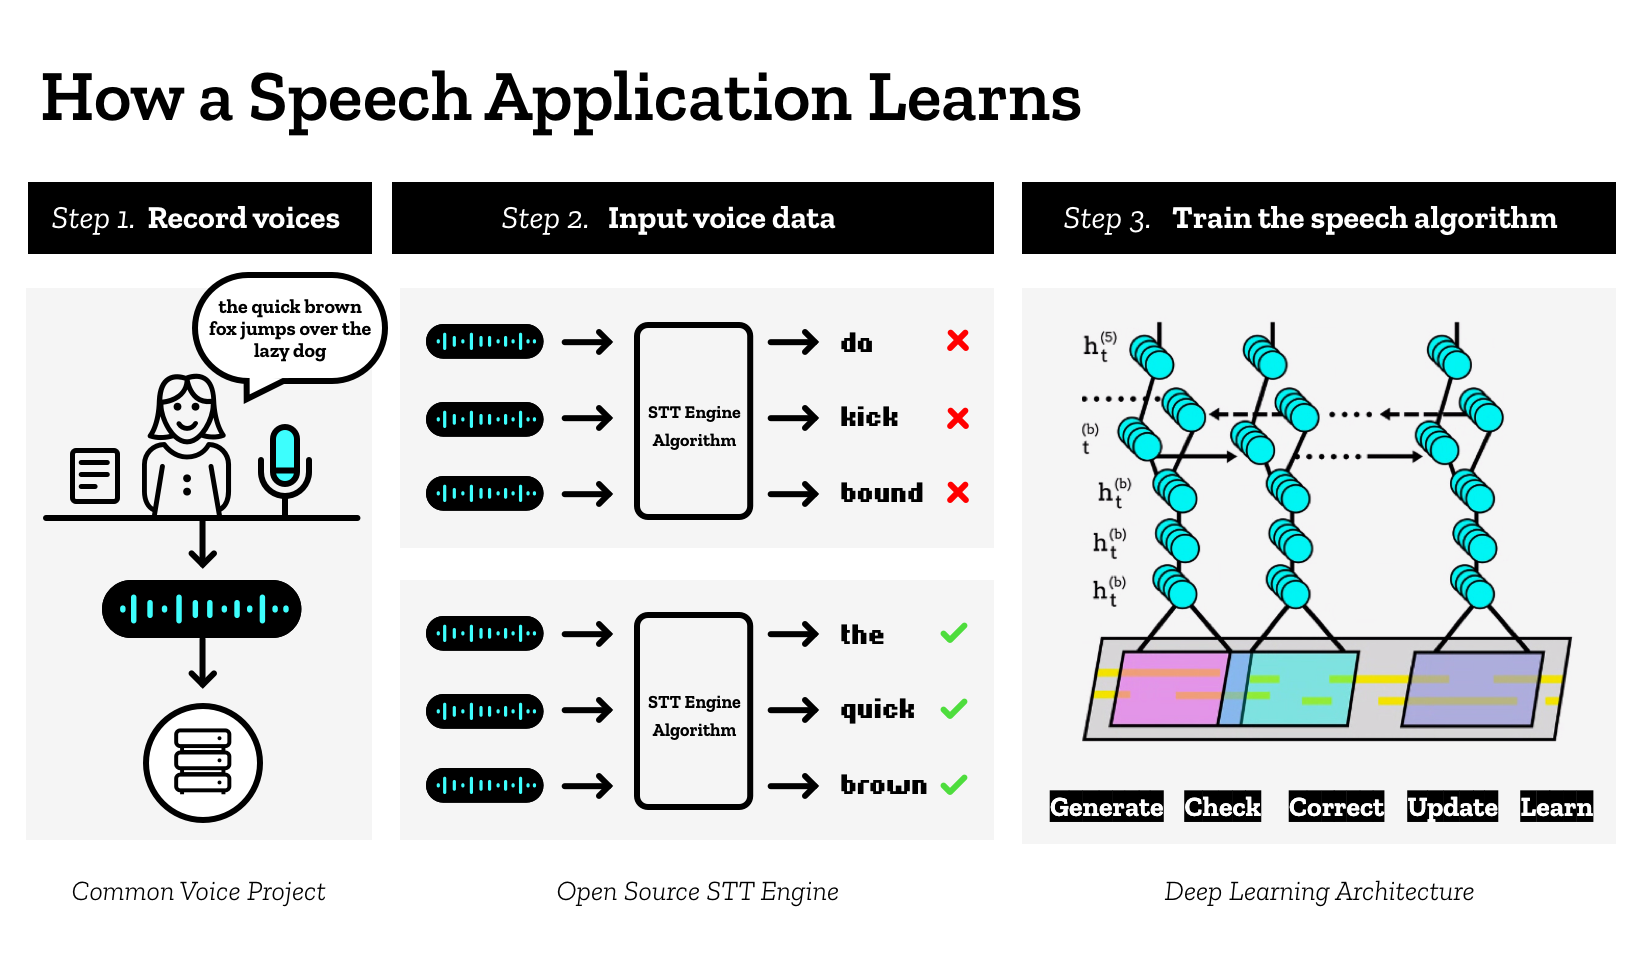 How a Speech Application Learns